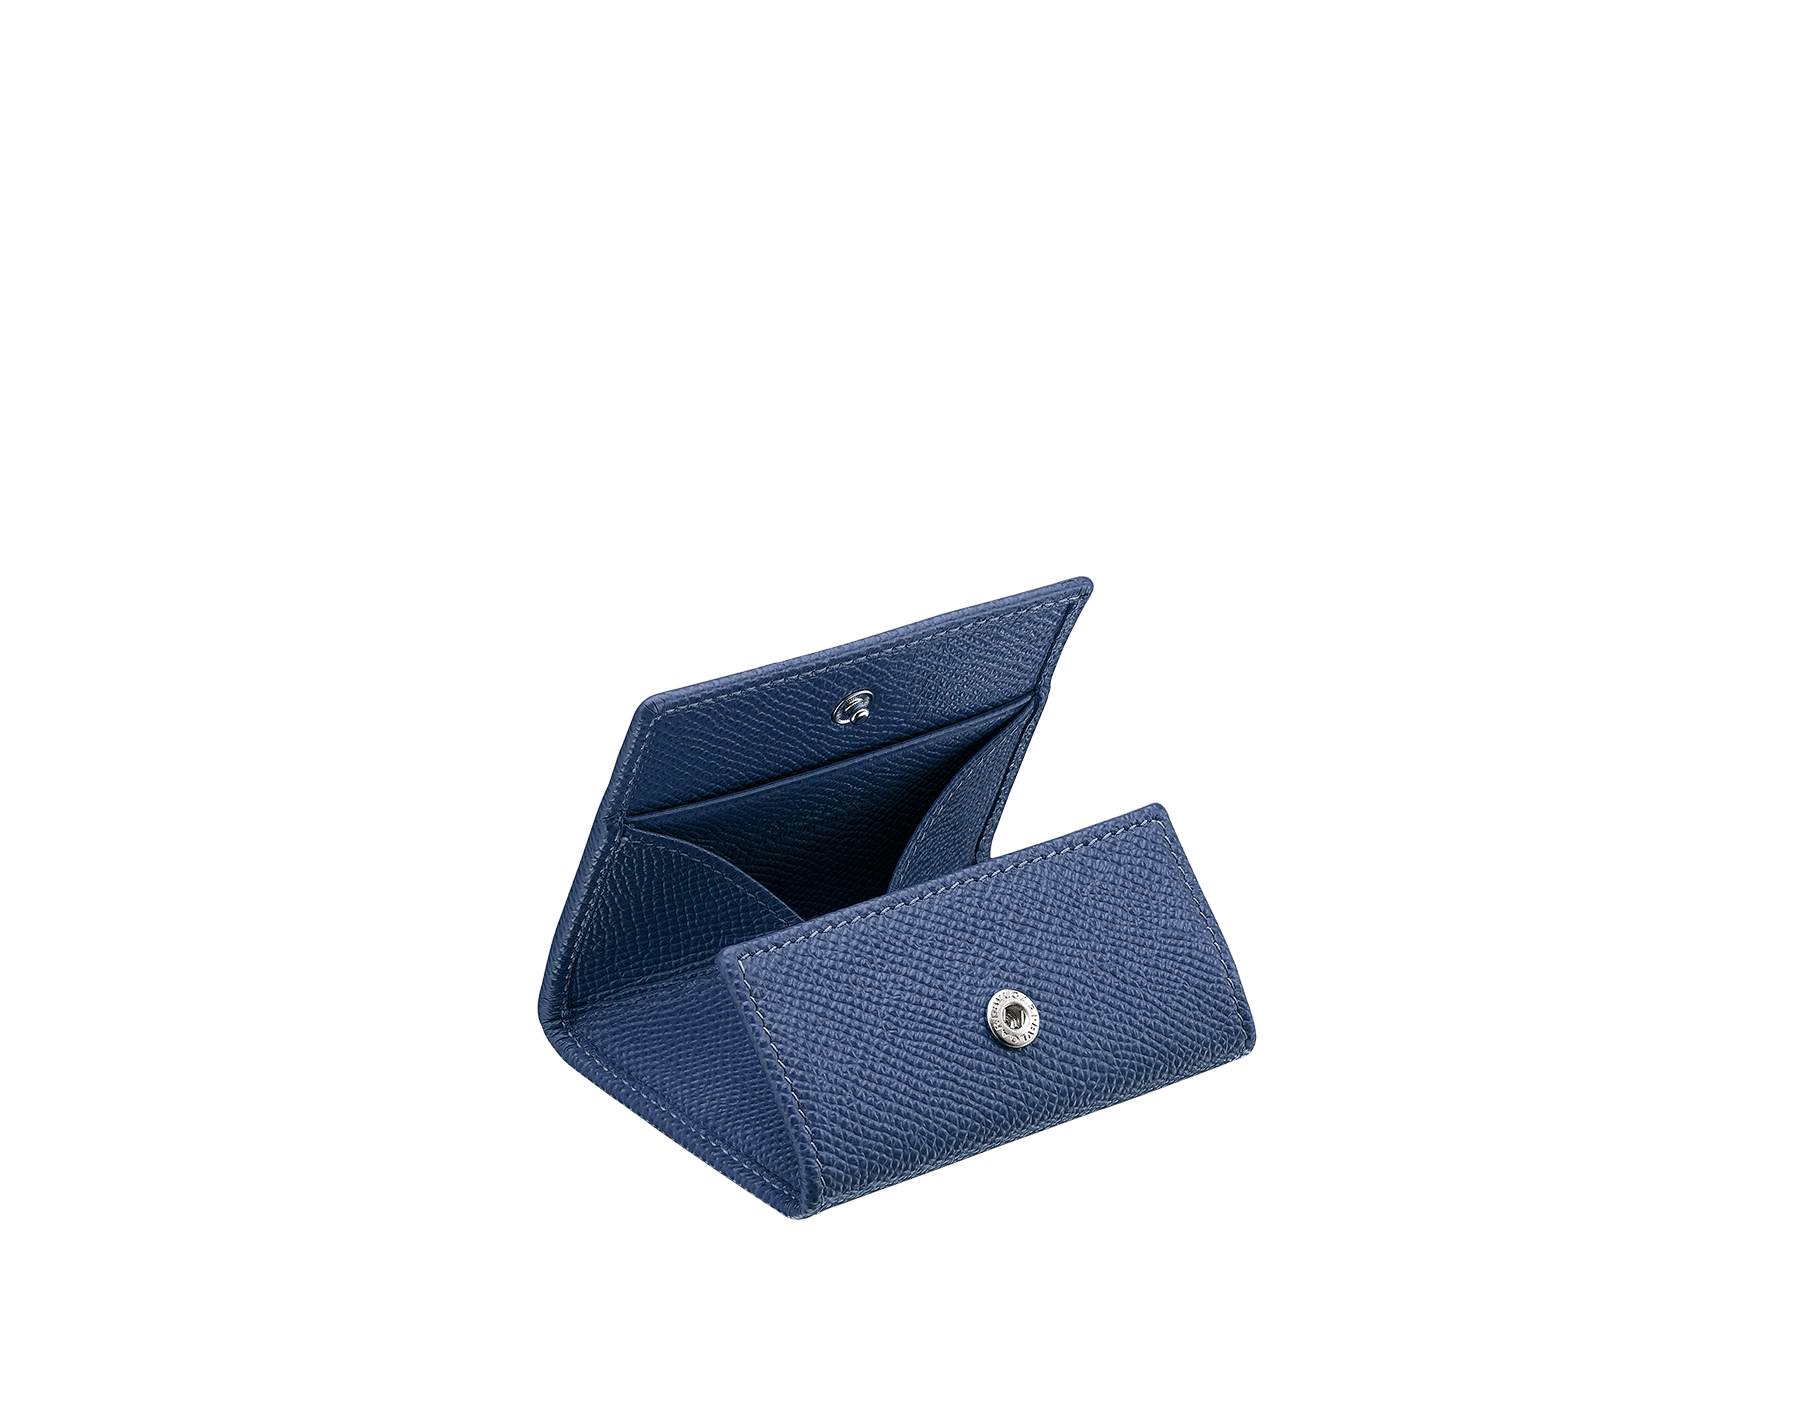 Coin holder in denim sapphire grain calf leather, with brass palladium plated hardware featuring the Bvlgari-Bvlgari motif. 286890 image 2